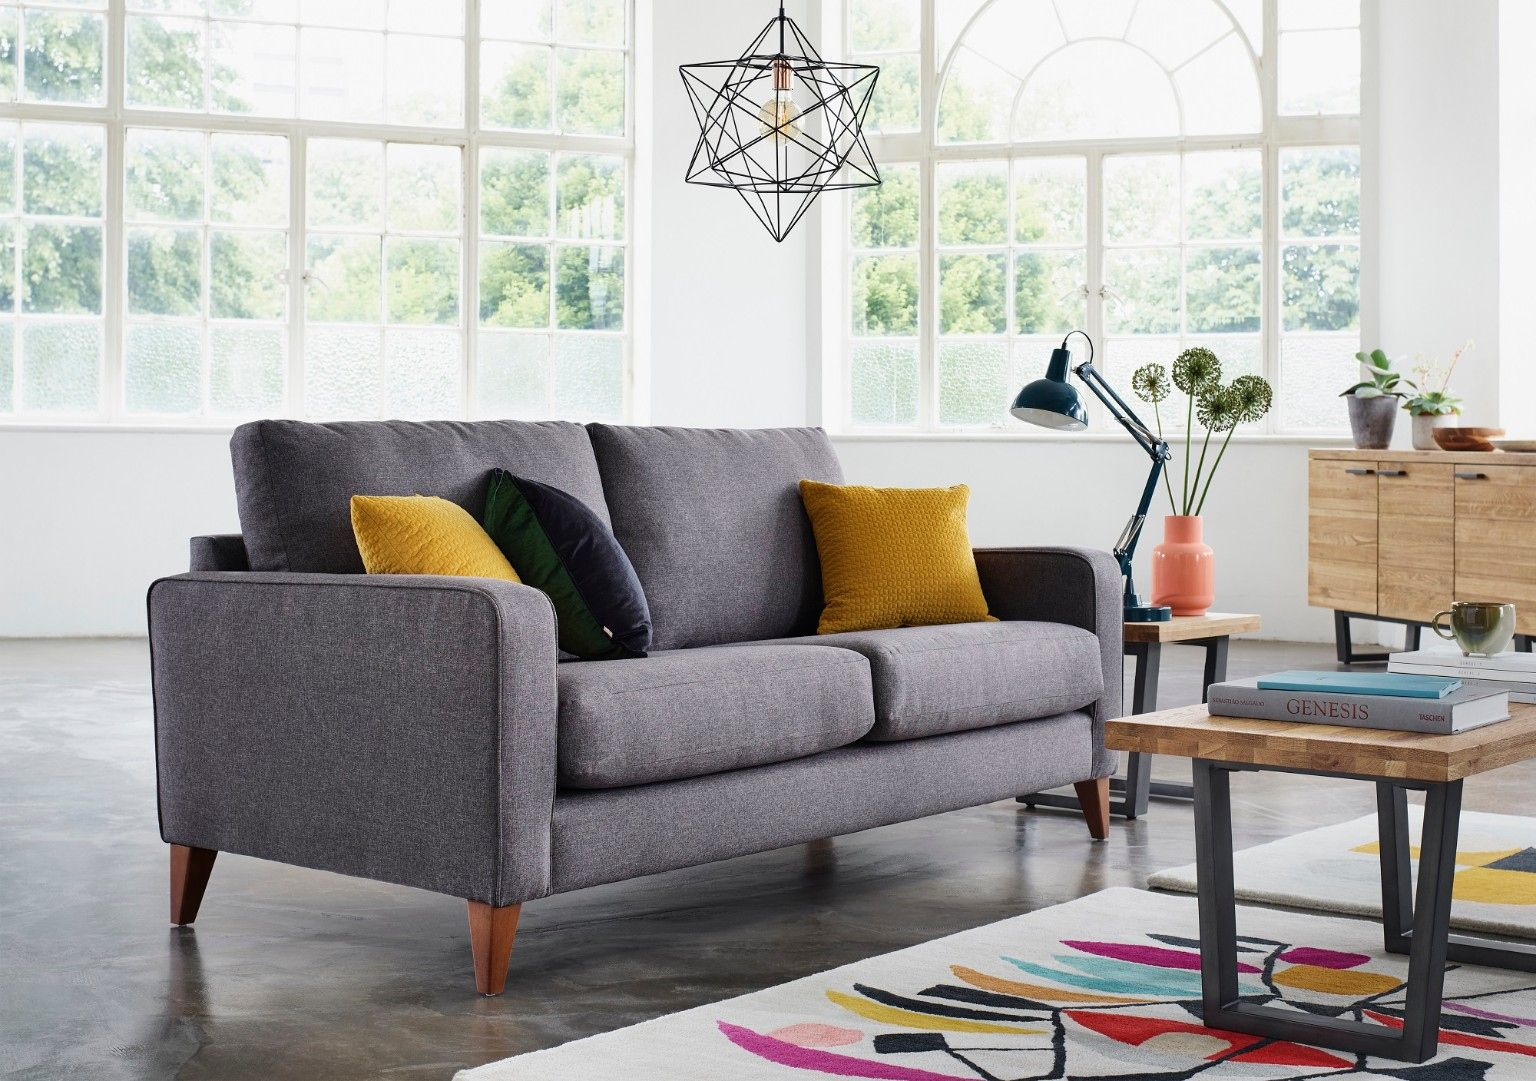 6 Modern Sofas Under £500 – Affordable Low-cost Modern Sofas